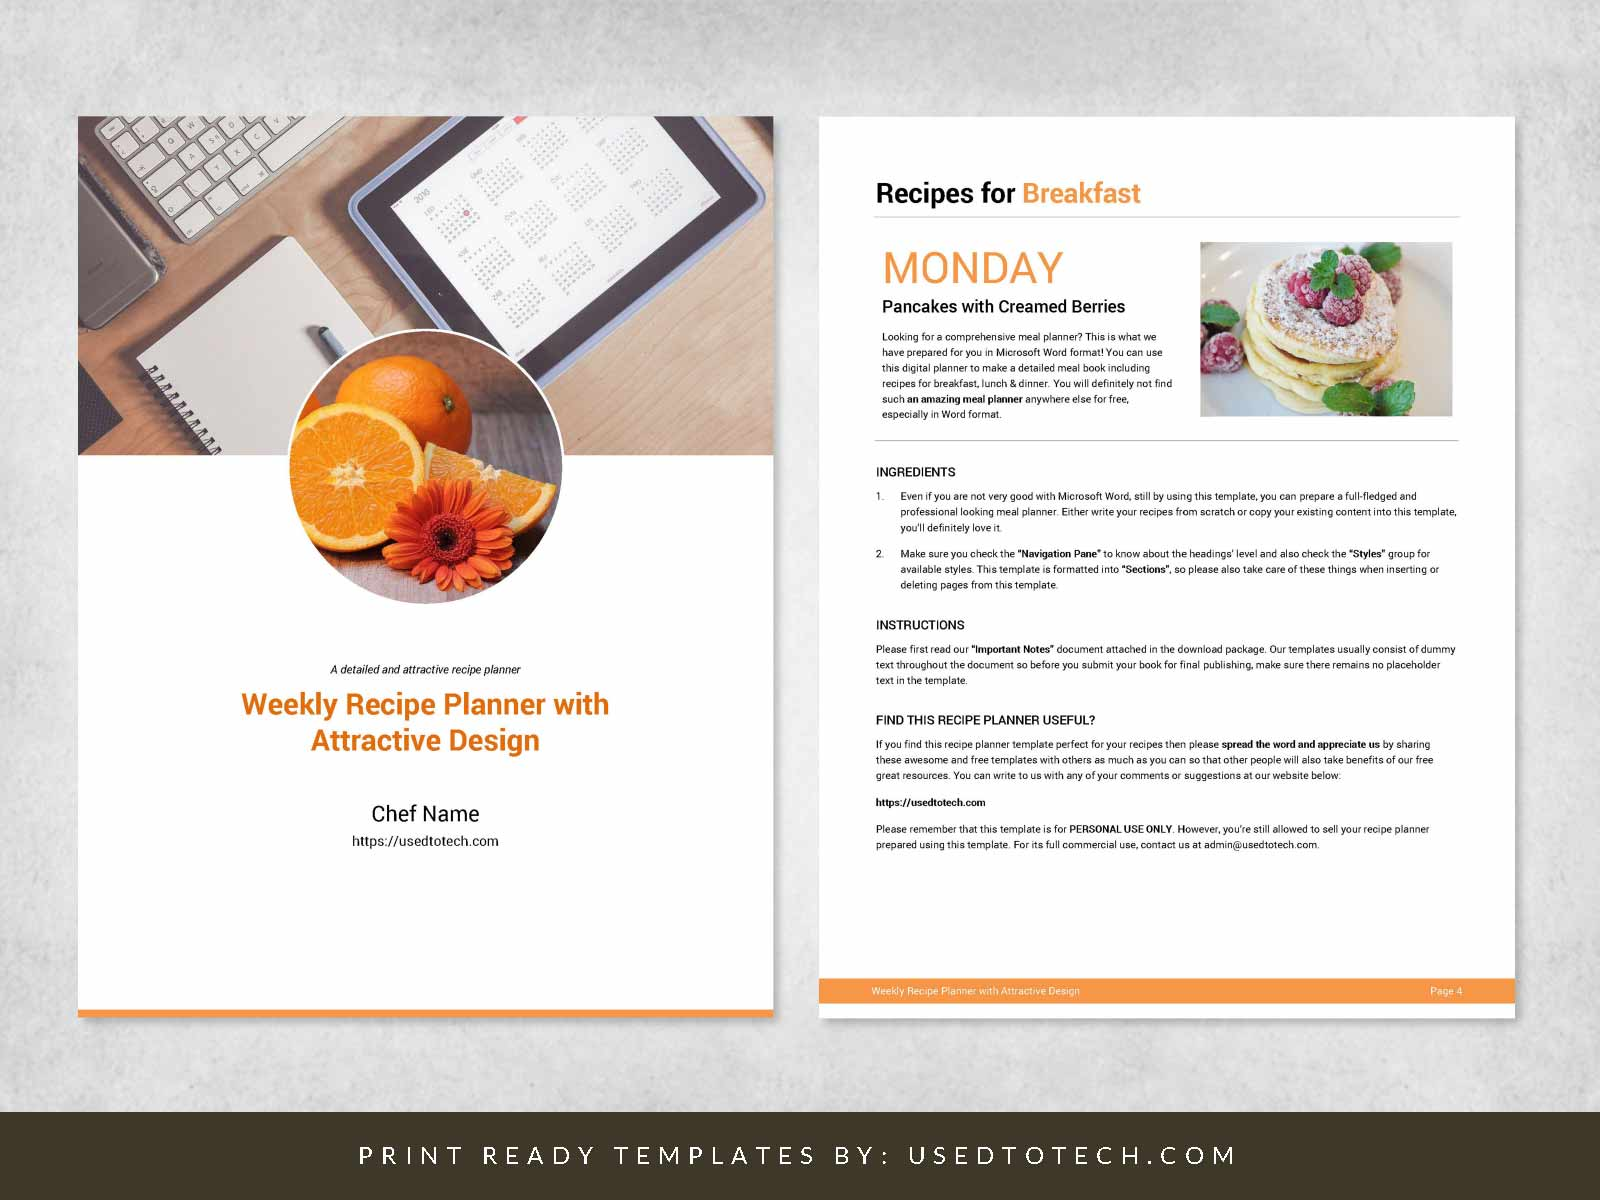 Weekly recipe planner for Word with attractive design